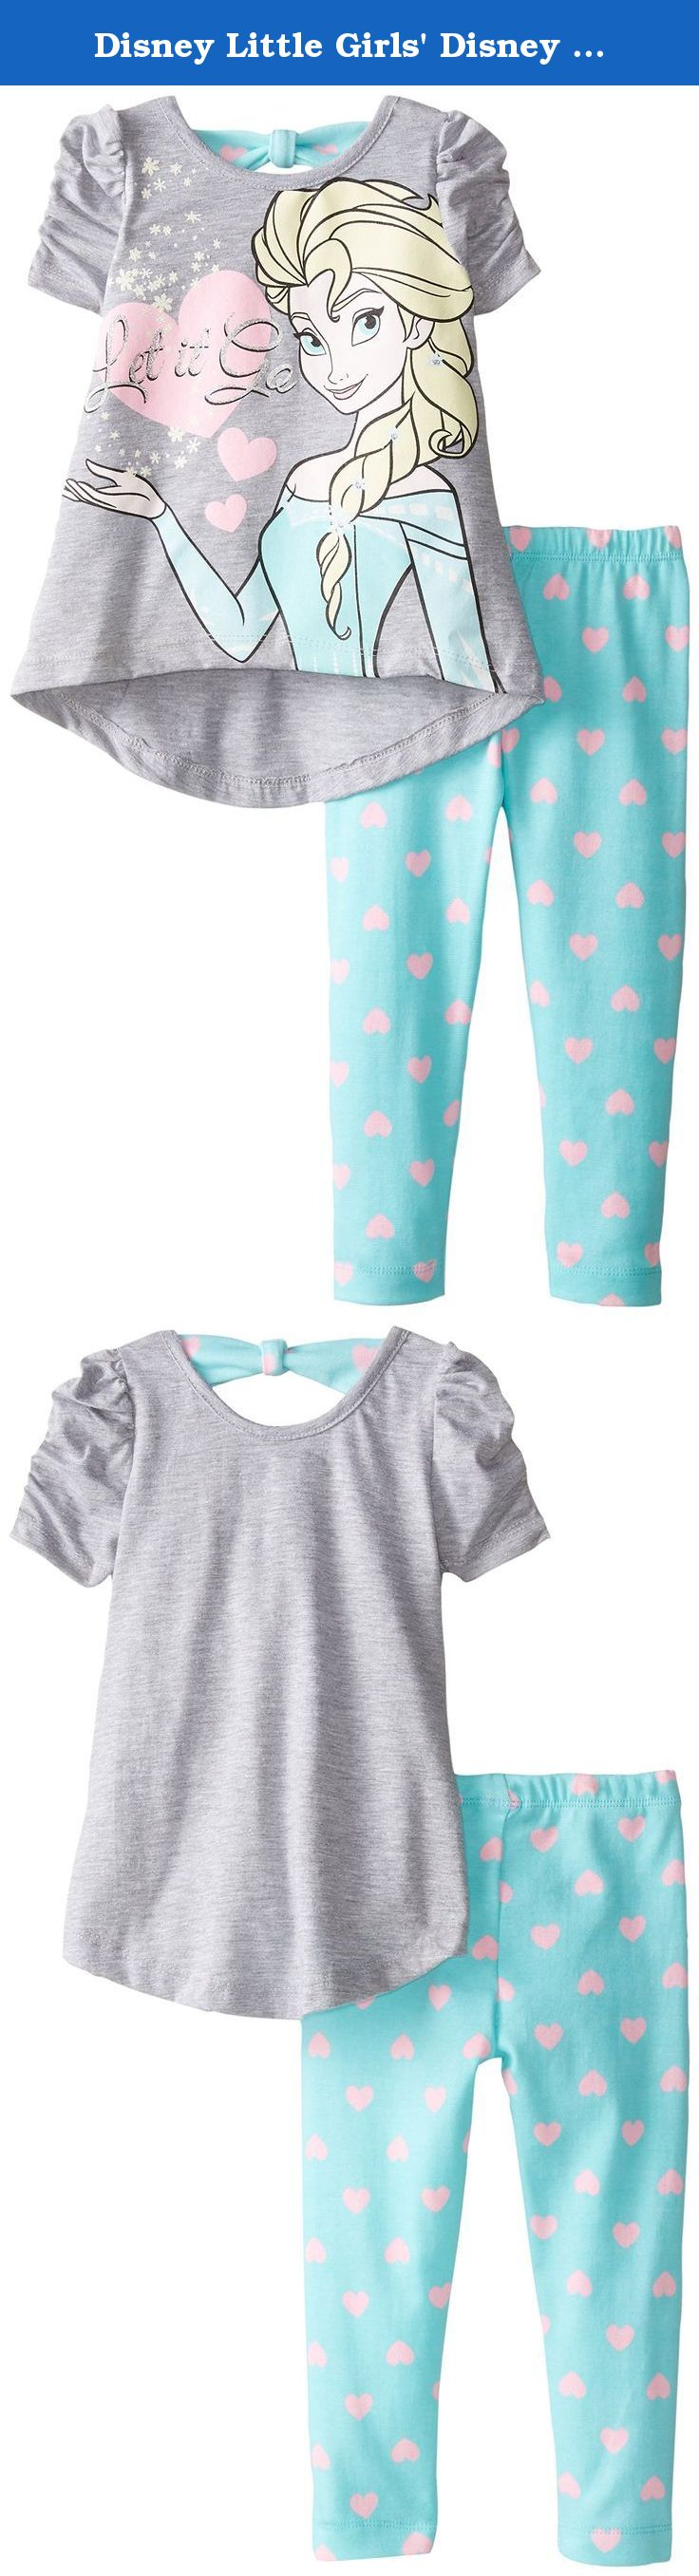 Disney Little Girls' Disney Frozen Elsa Legging Set, Gray, 4T. Disney frozen Elsa legging set.